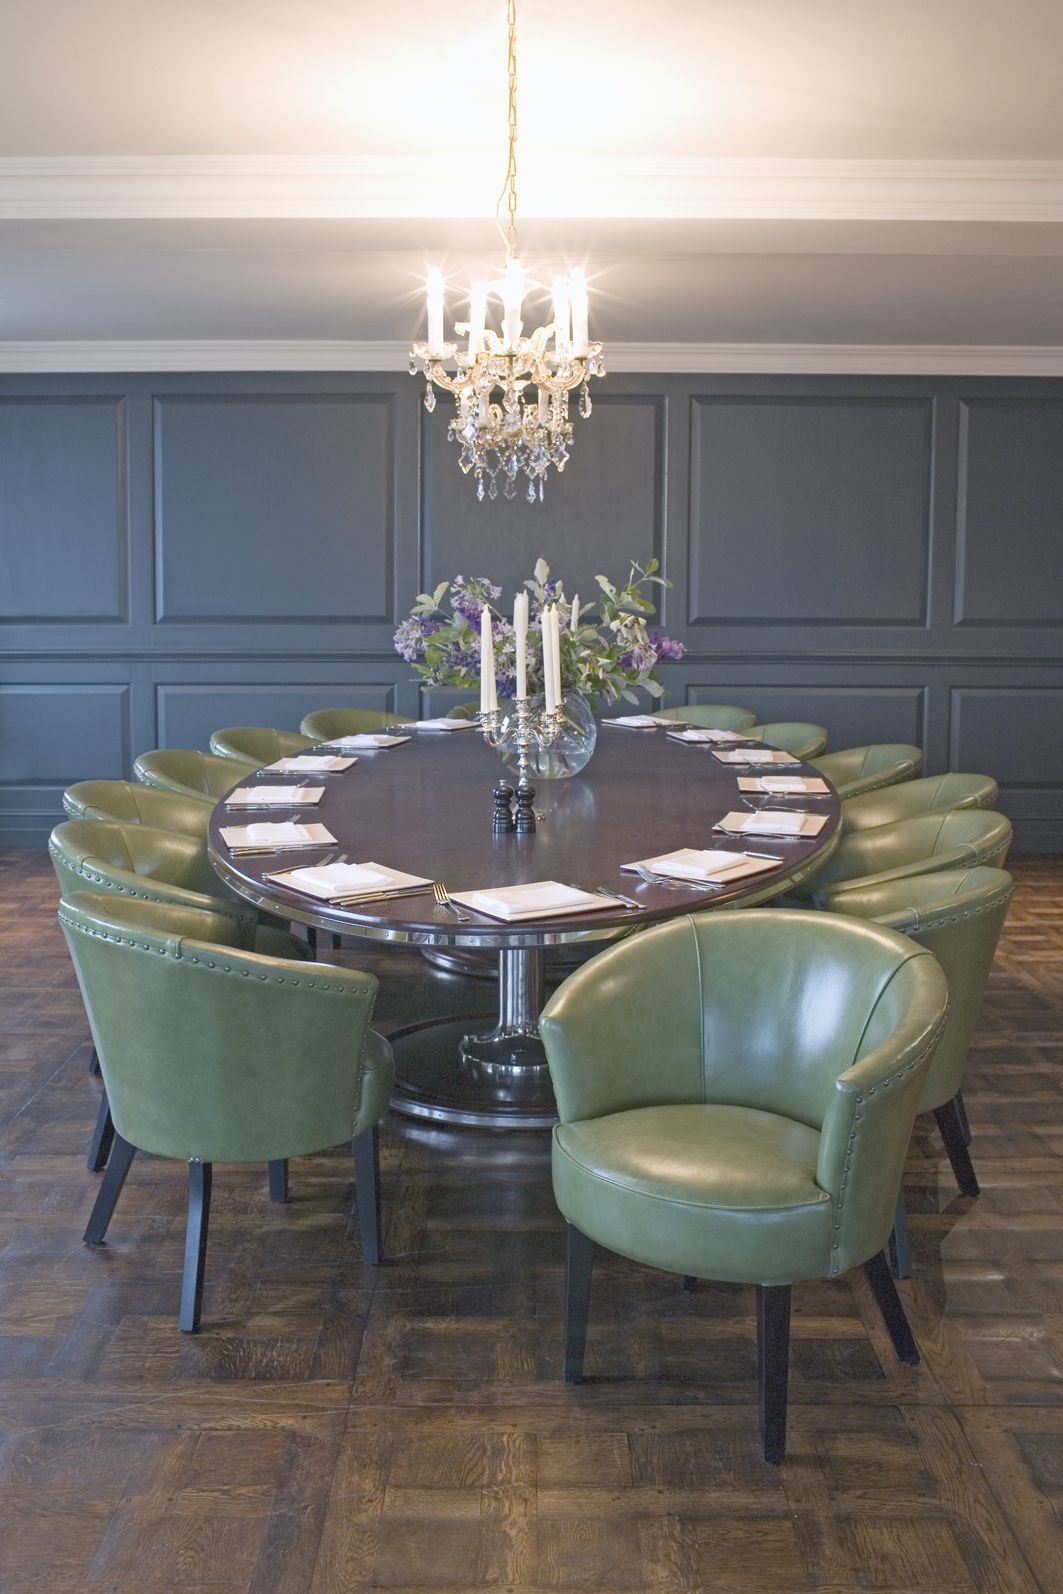 Shoreditch Design Rooms: Elegant Petworth Chairs @ Shoreditch House From George